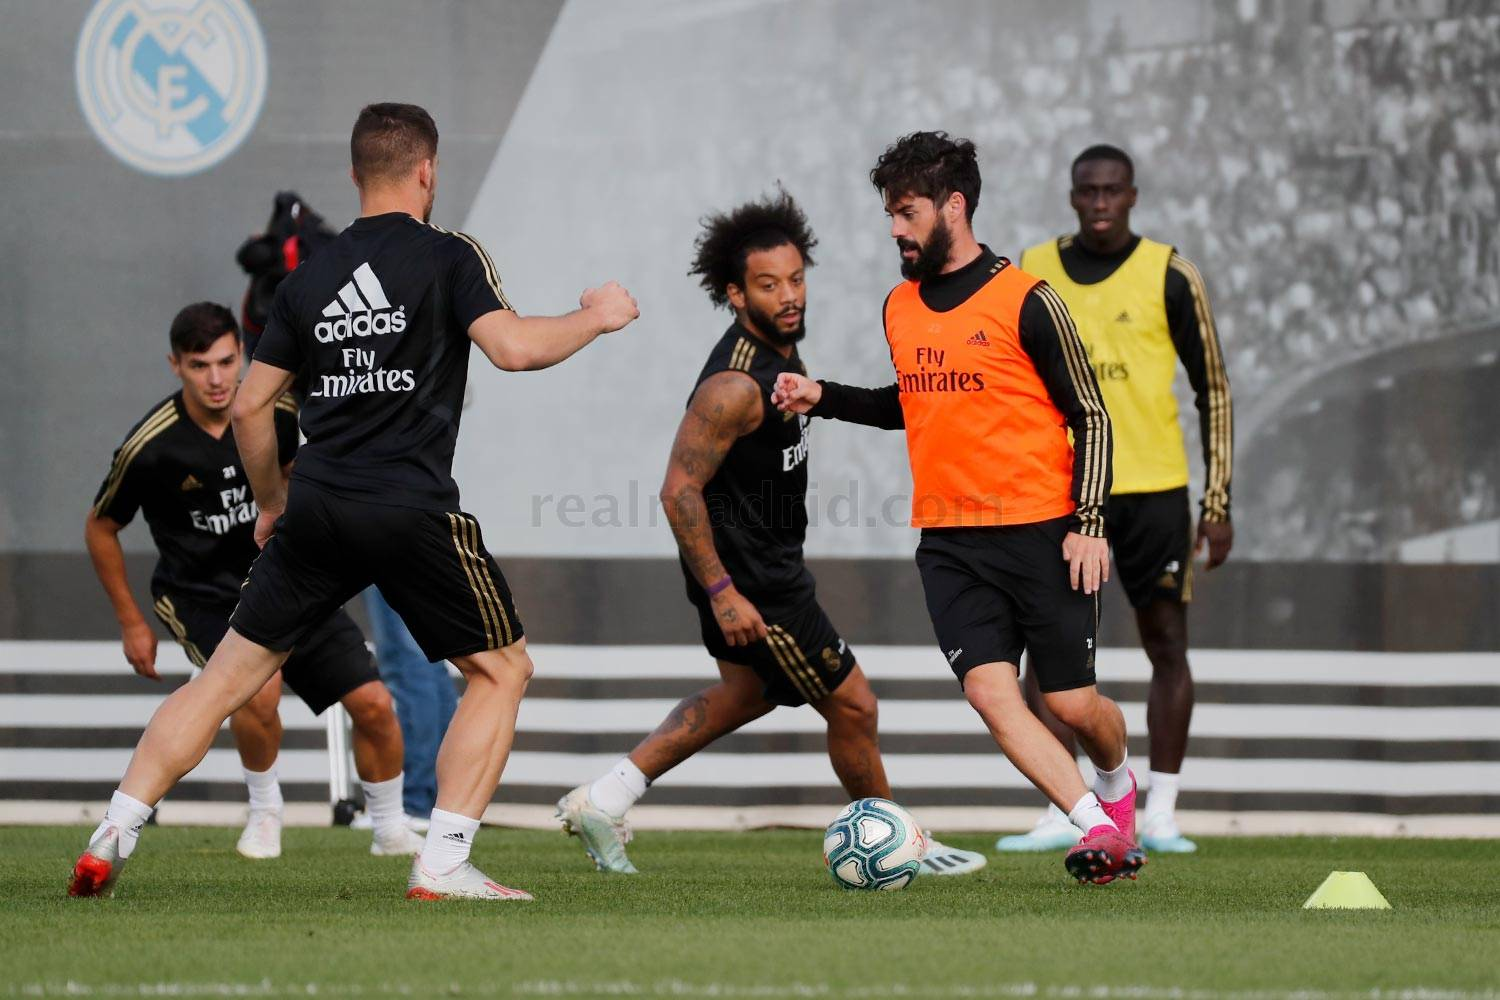 Real Madrid - Entrenamiento del Real Madrid  - 14-10-2019